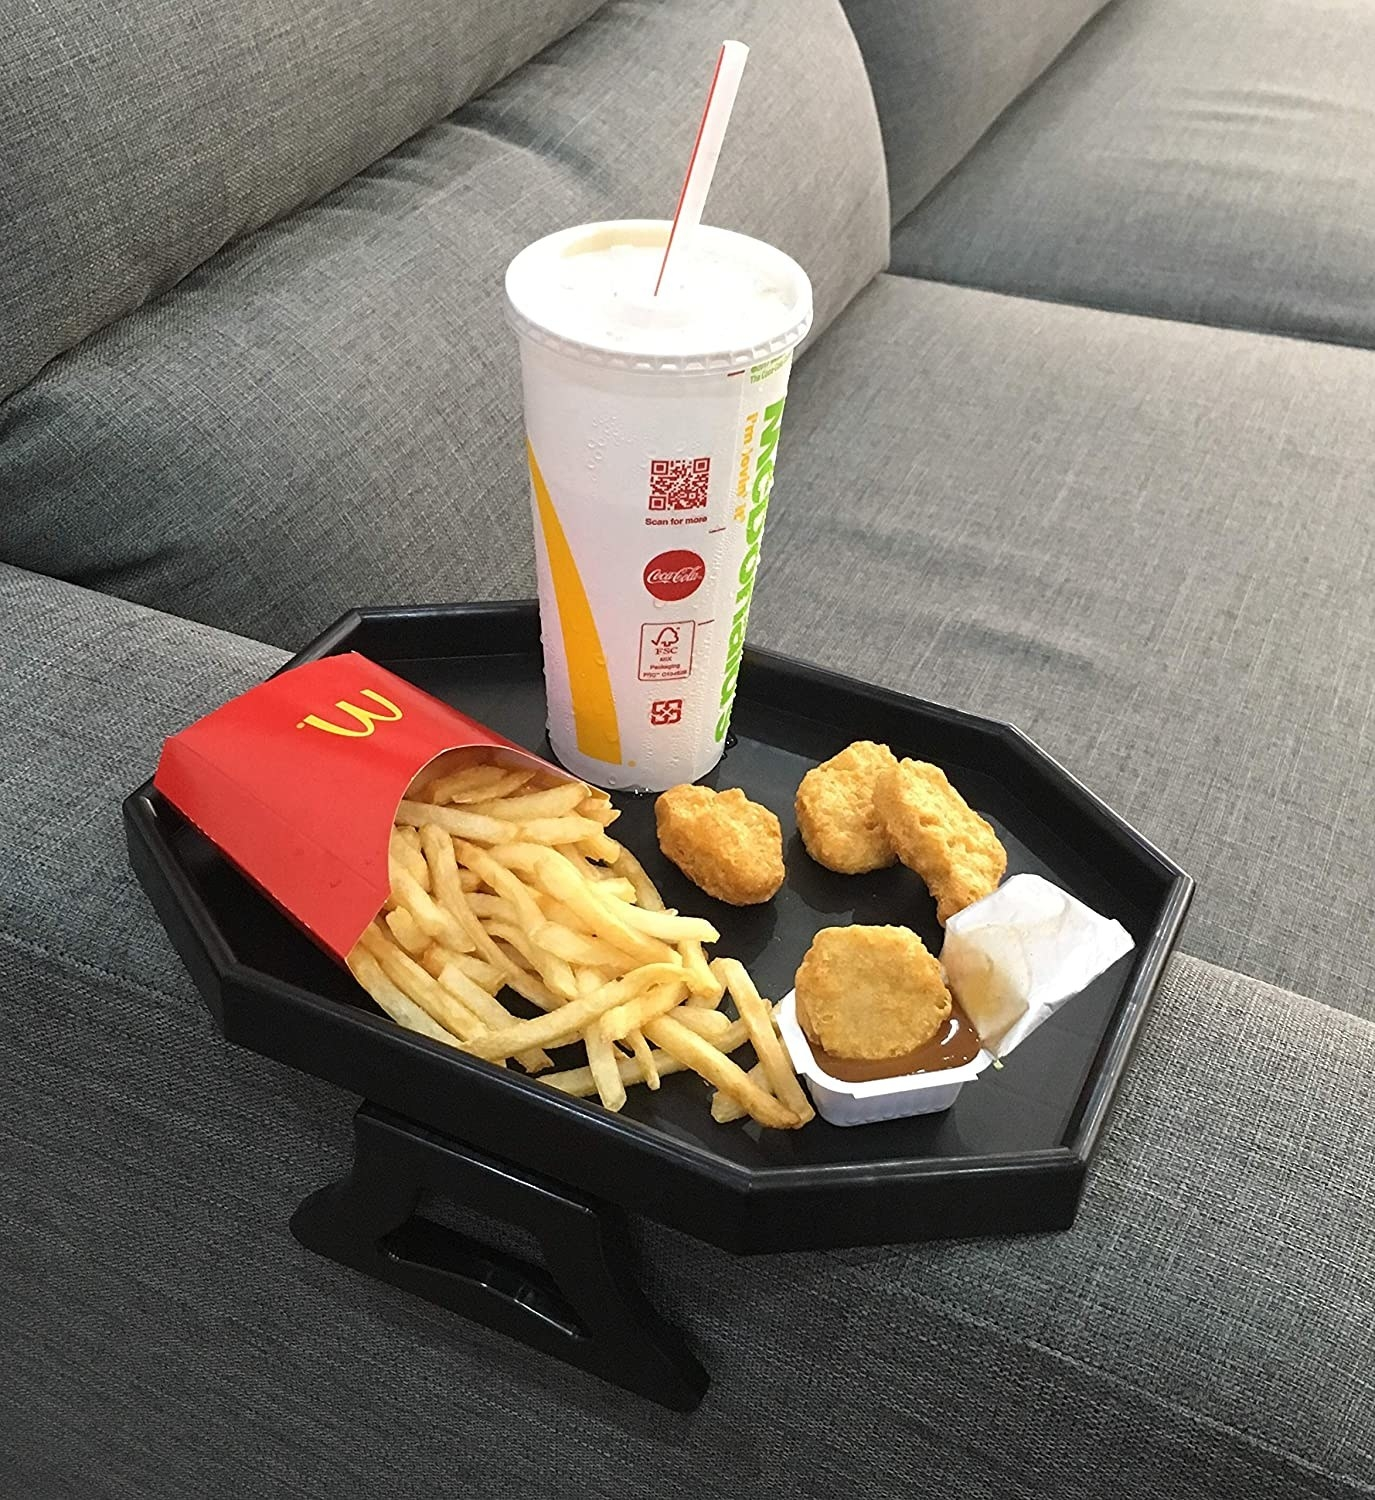 Fries, chicken nuggets, and a drink on top of the arm rest tray